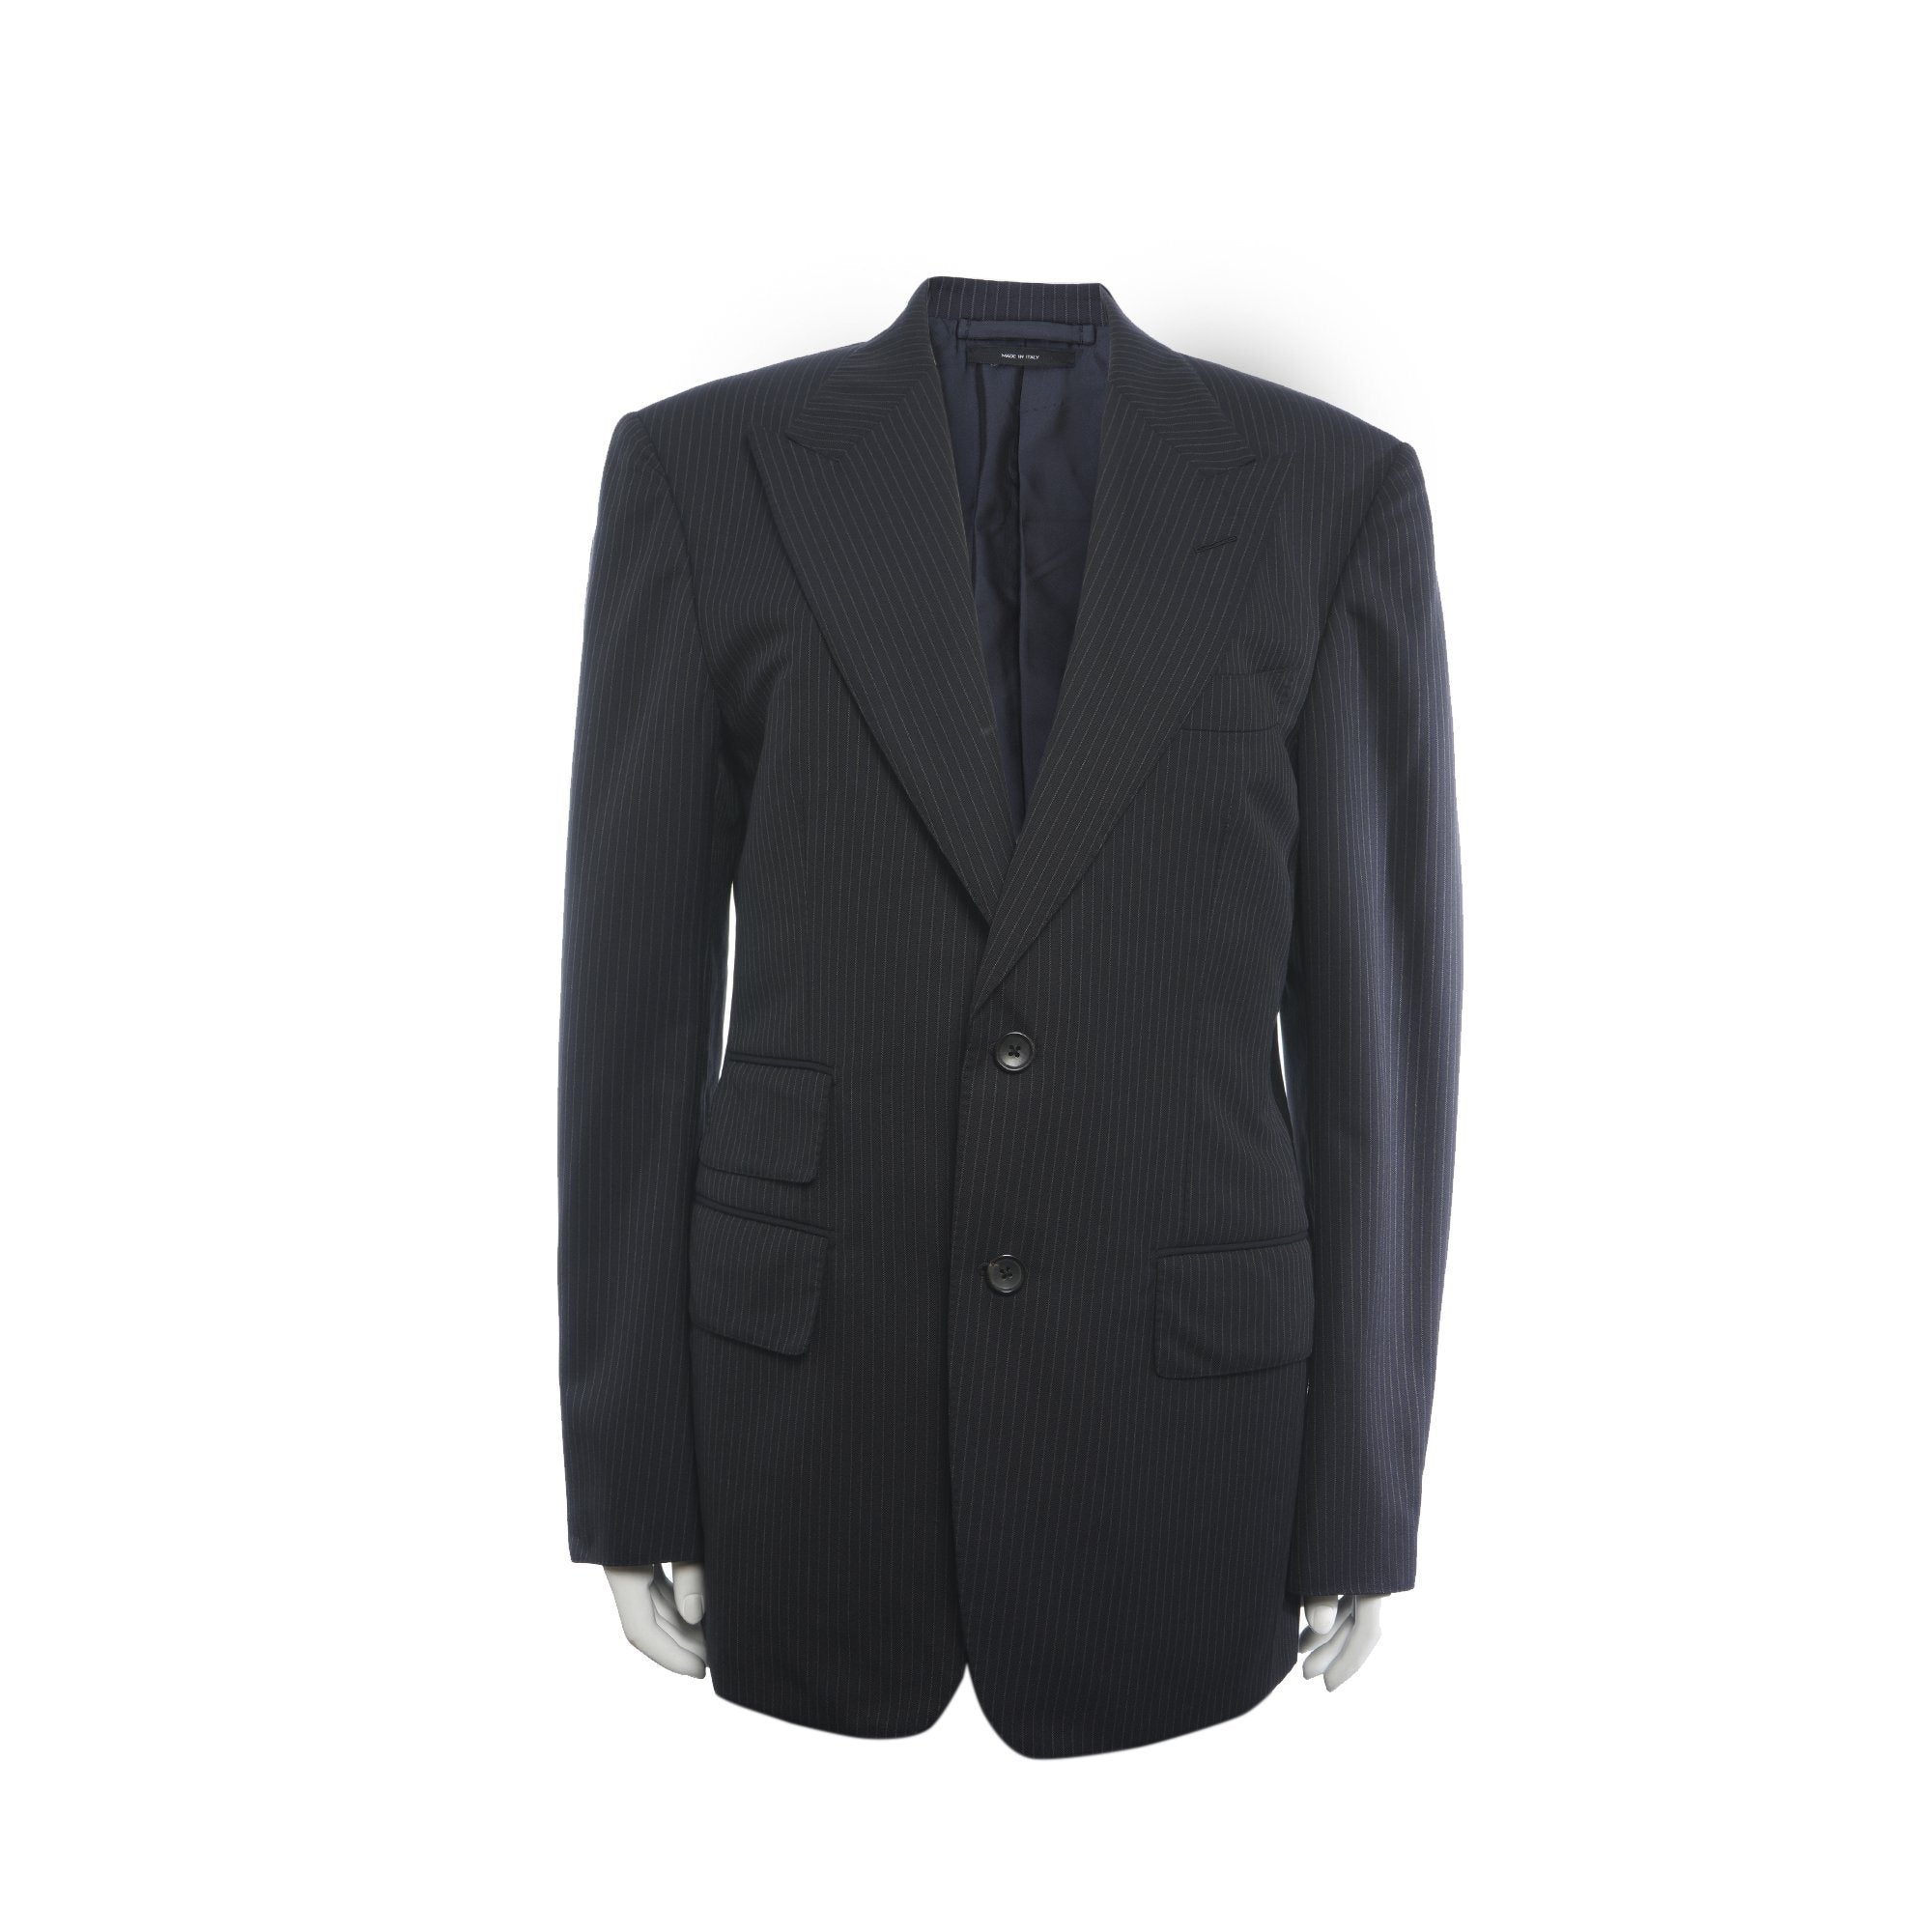 Tom Ford Two Button Pin Striped Black Suit